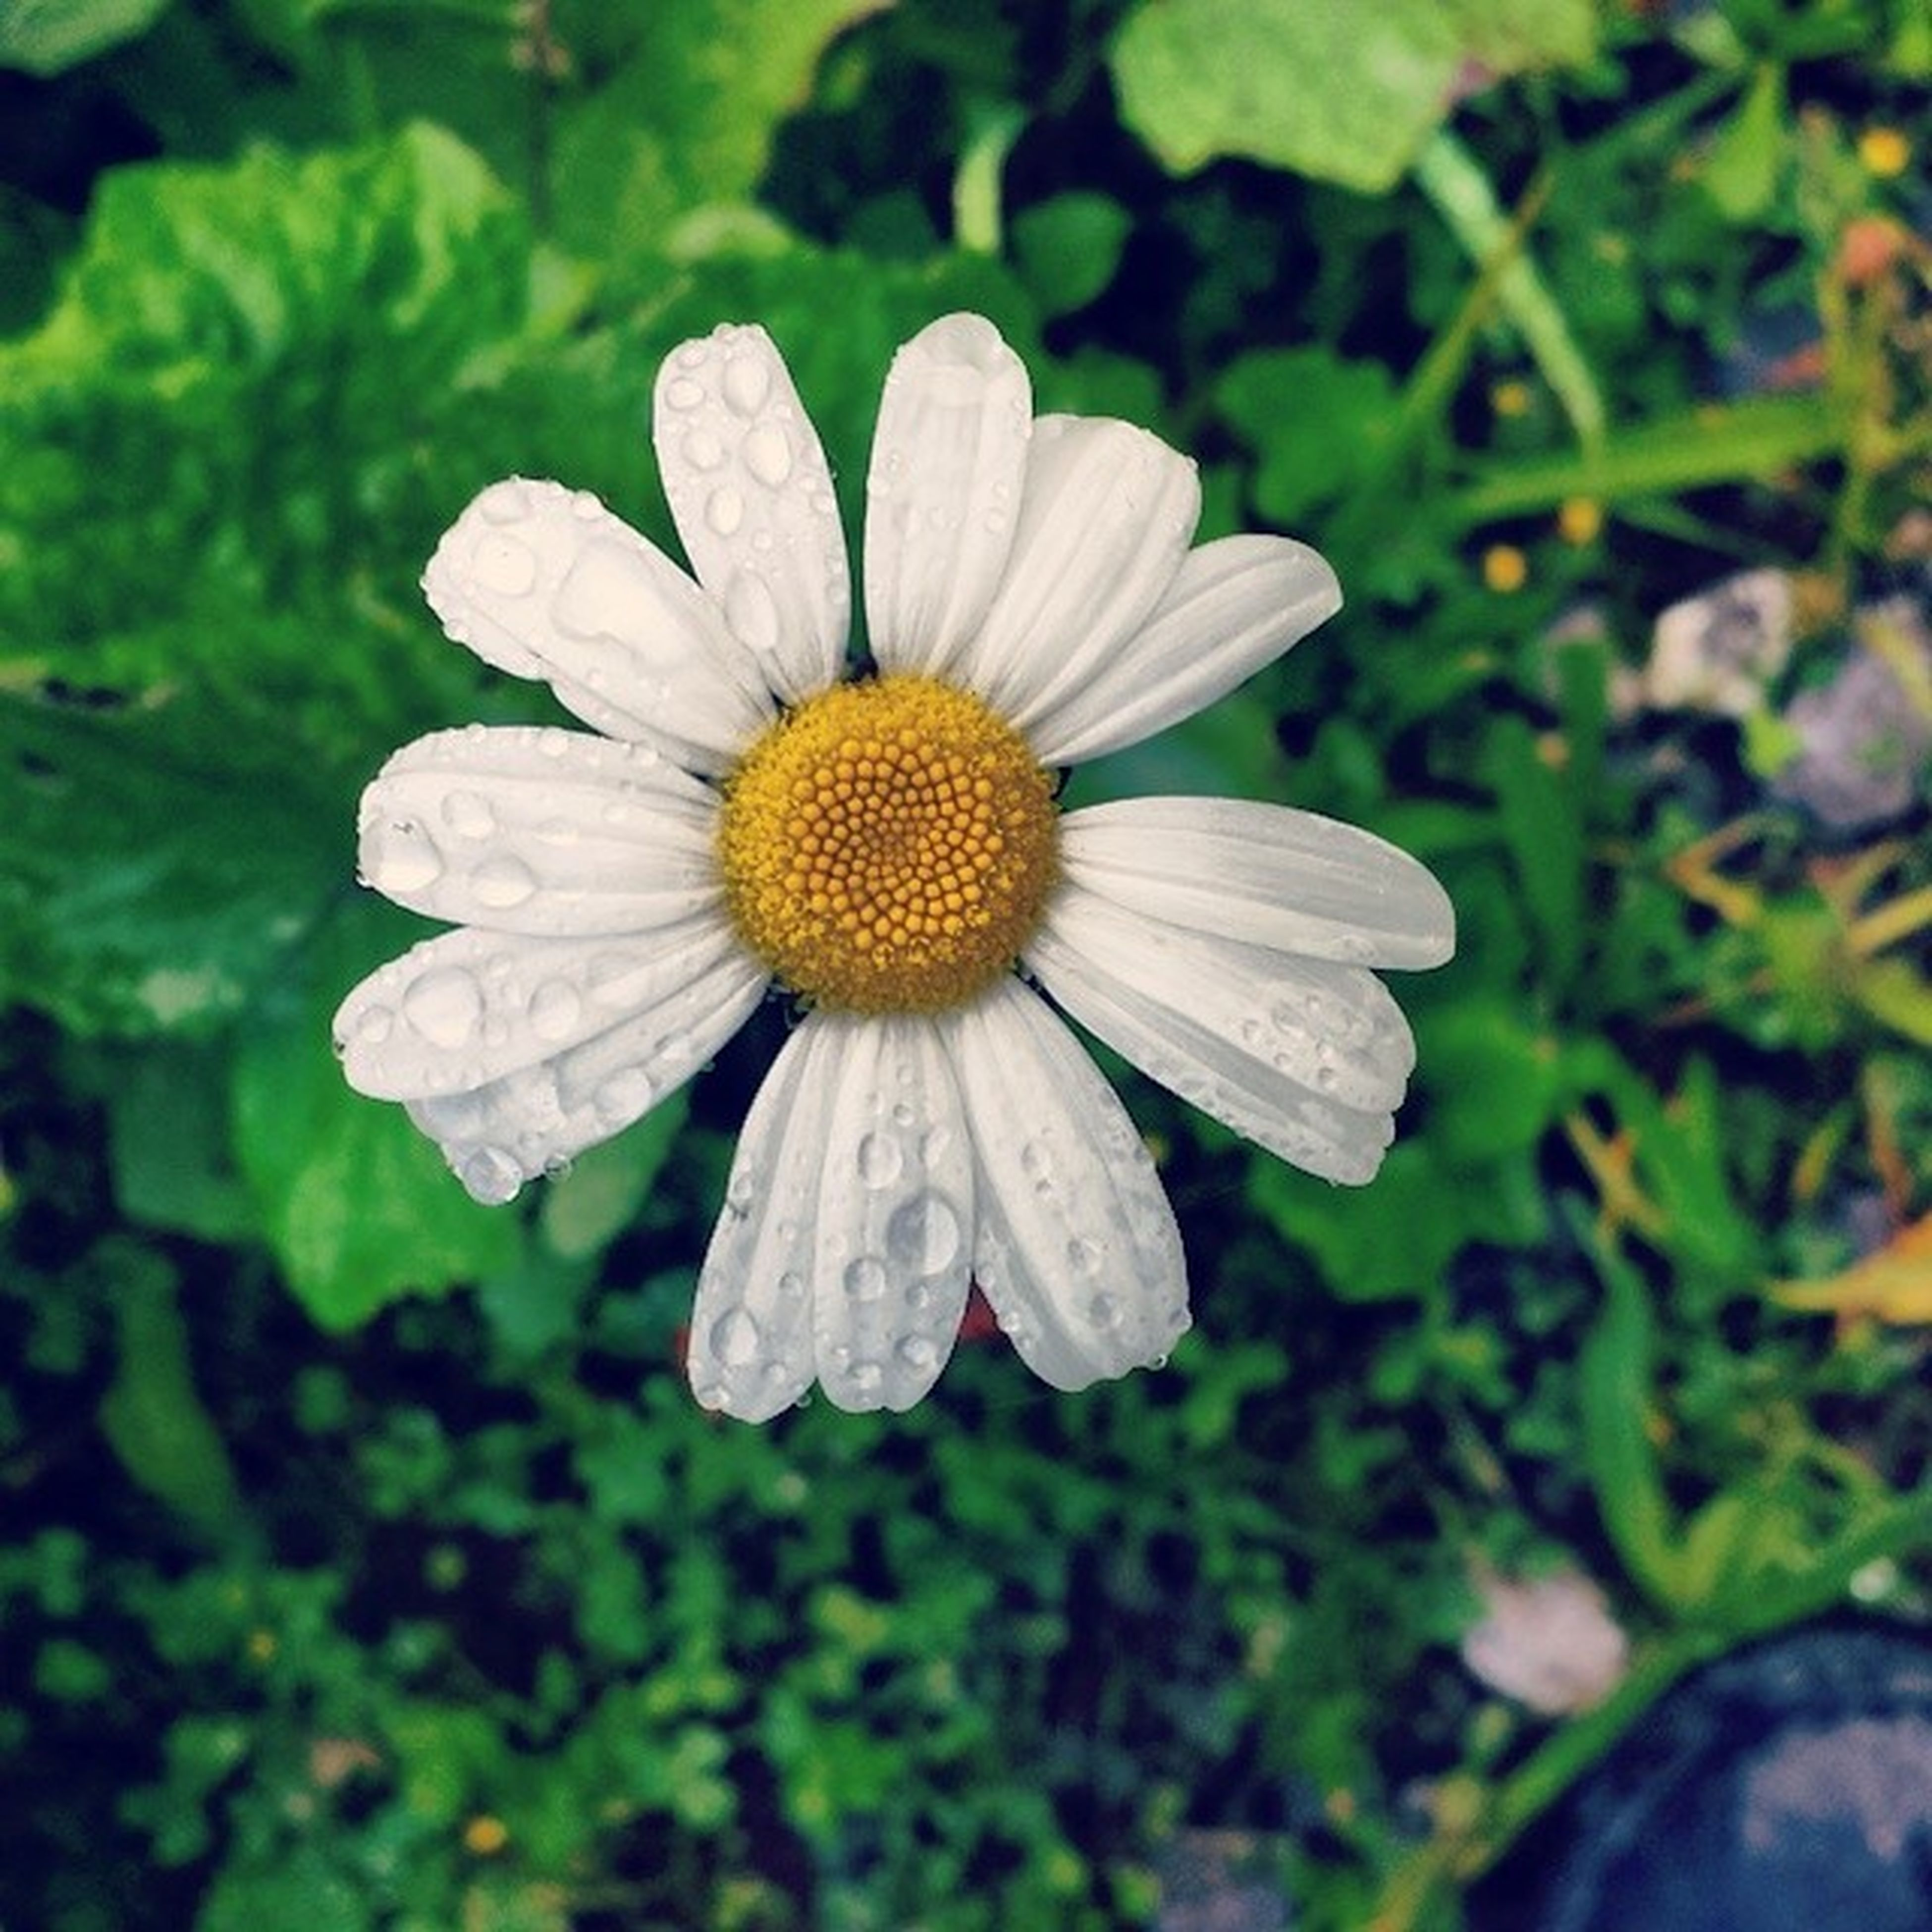 flower, petal, freshness, fragility, flower head, growth, beauty in nature, close-up, pollen, blooming, single flower, focus on foreground, nature, drop, plant, water, wet, yellow, white color, in bloom